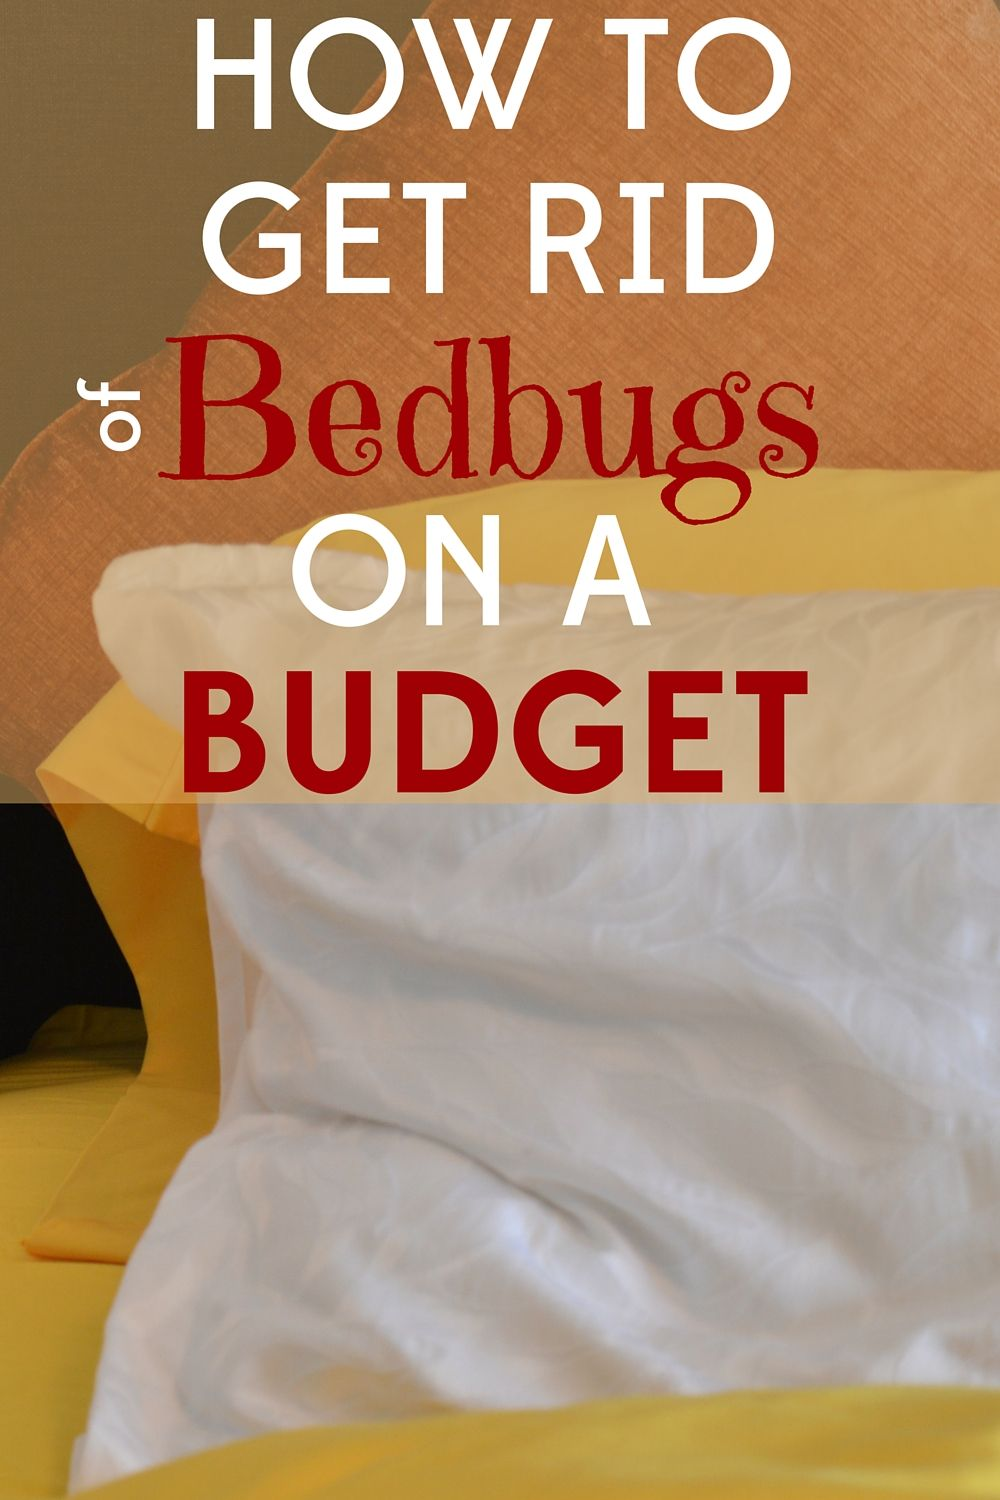 Getting Rid Of Bedbugs On A Budget With Images Bed Bugs Budgeting Bed Bug Remedies